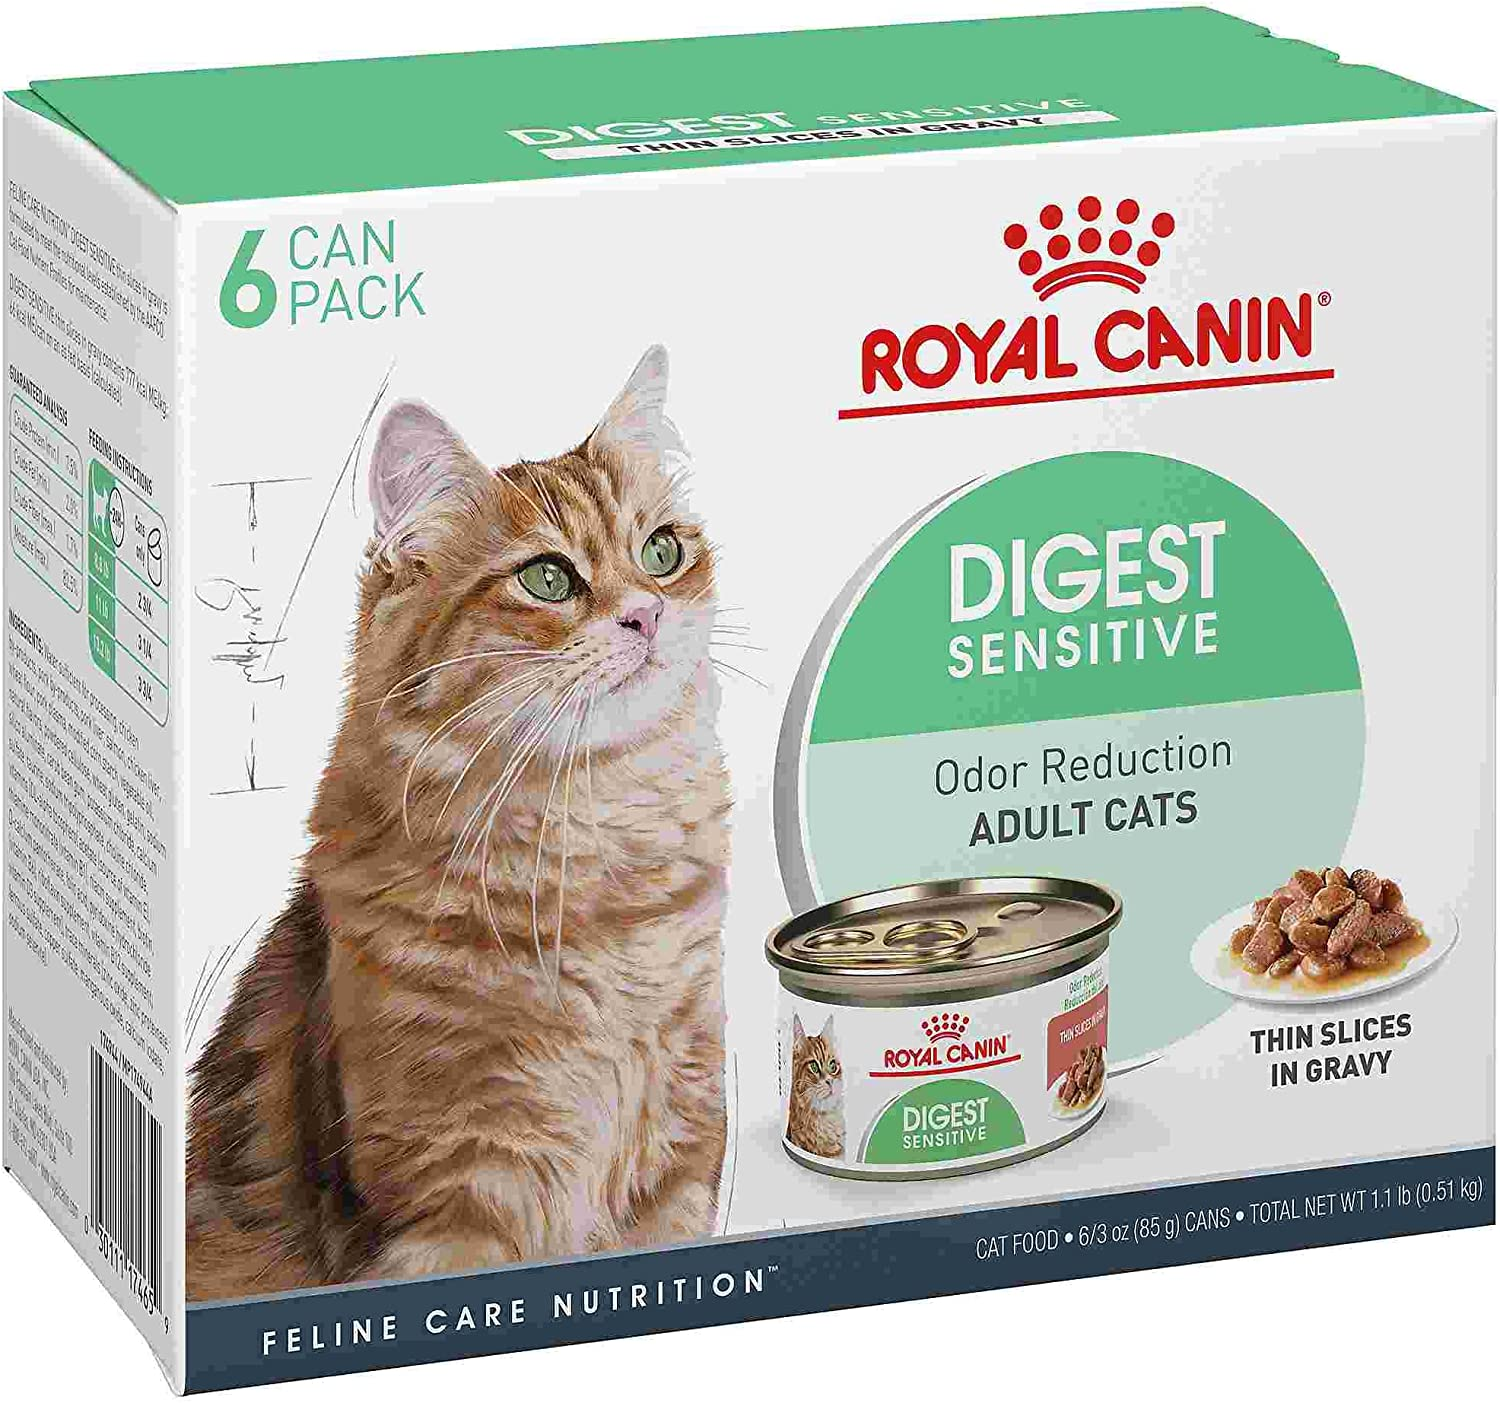 Royal Canin Feline Health Nutrition Digest Sensitive Thin Slices in Gravy Wet Cat Food, 3 oz, Multipack of 6